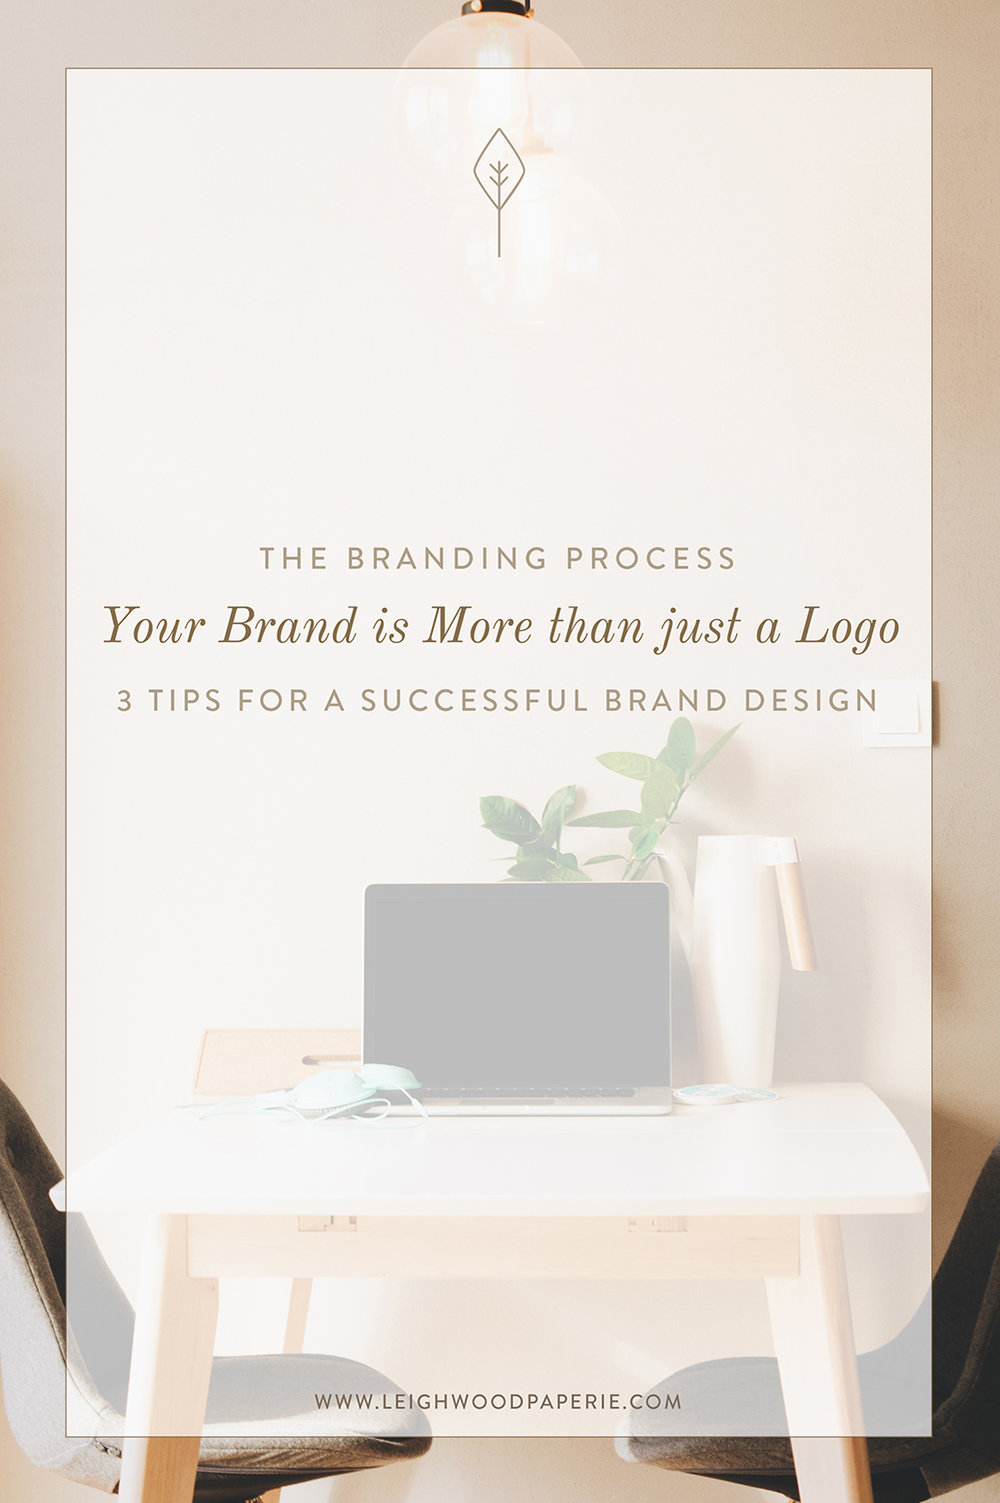 Leighwood Paperie >> The Branding Process: Your brand is more than just a logo; Tips for a successful brand design